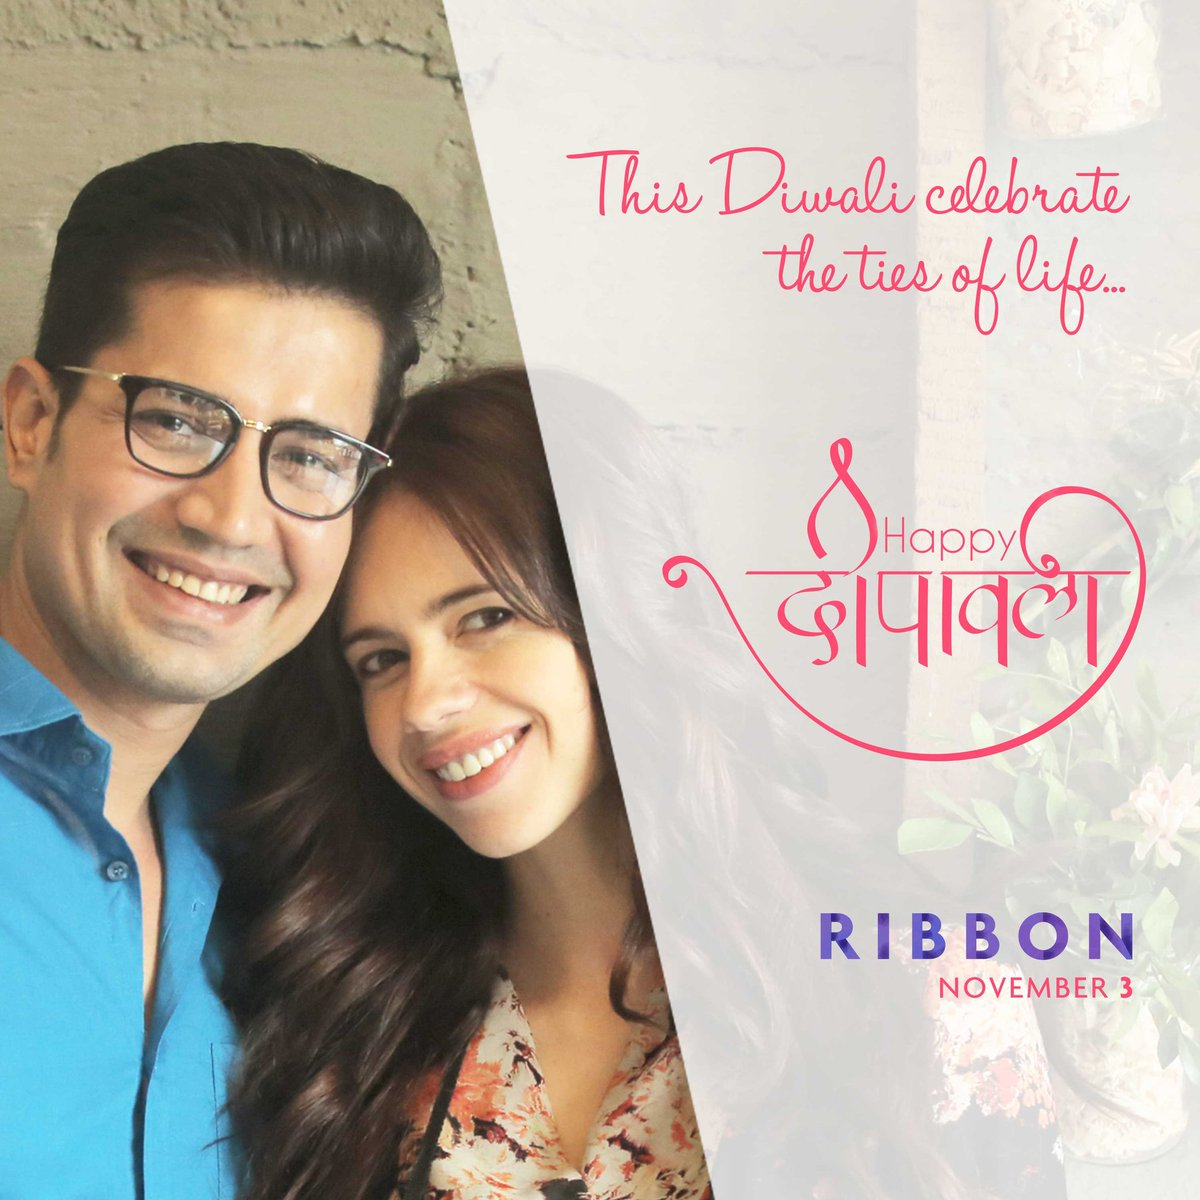 Team #Ribbon wishes you a bright and prosperous #Diwali    IN CINEMAS NOV 3 <br>http://pic.twitter.com/d4Cqd577Vn